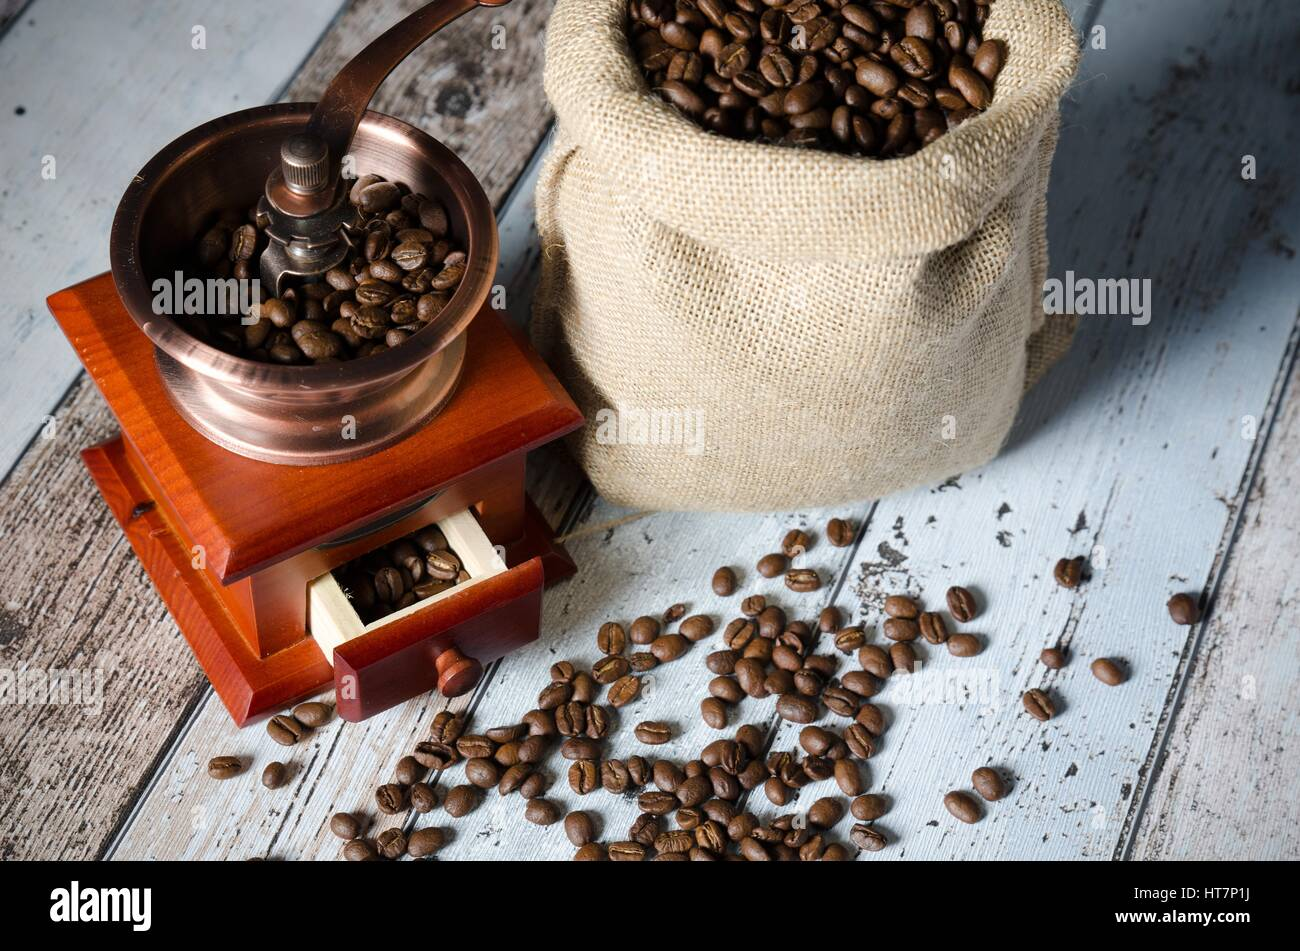 Coffee grinder with roasted beans. Vintage mill composition - Stock Image